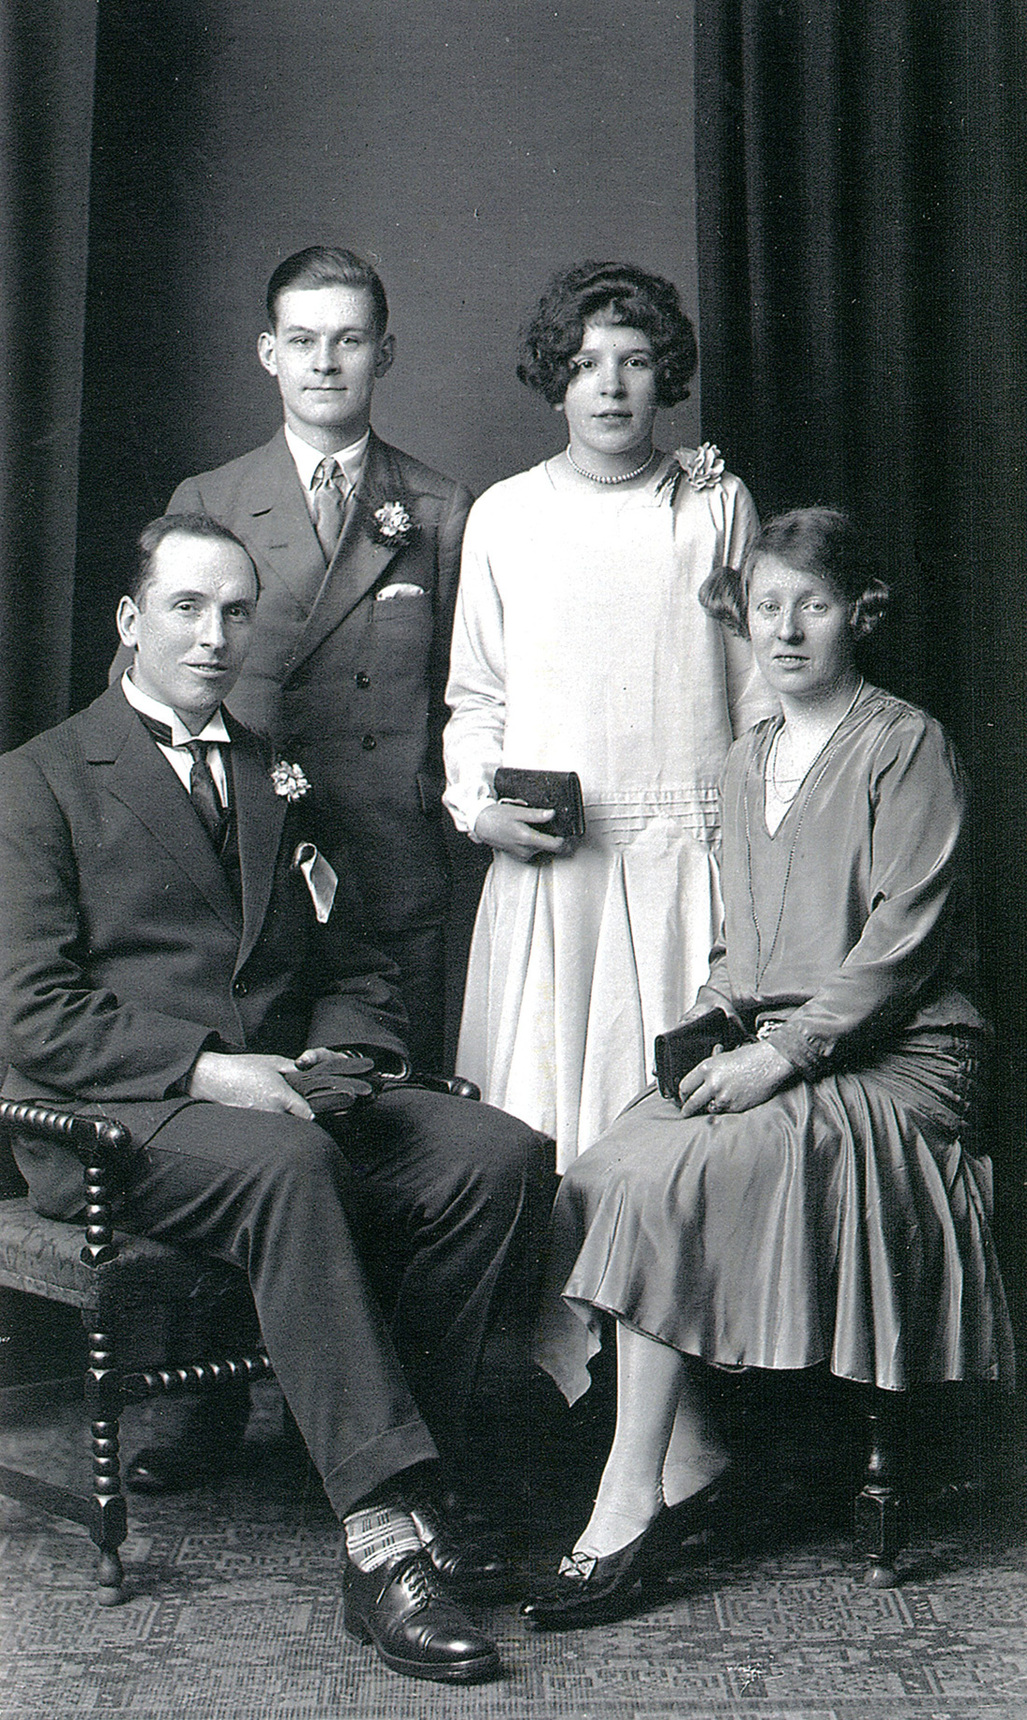 Studio Portrait Bride And Bridegroom Seated With Best Man And Bridesmaid 1929